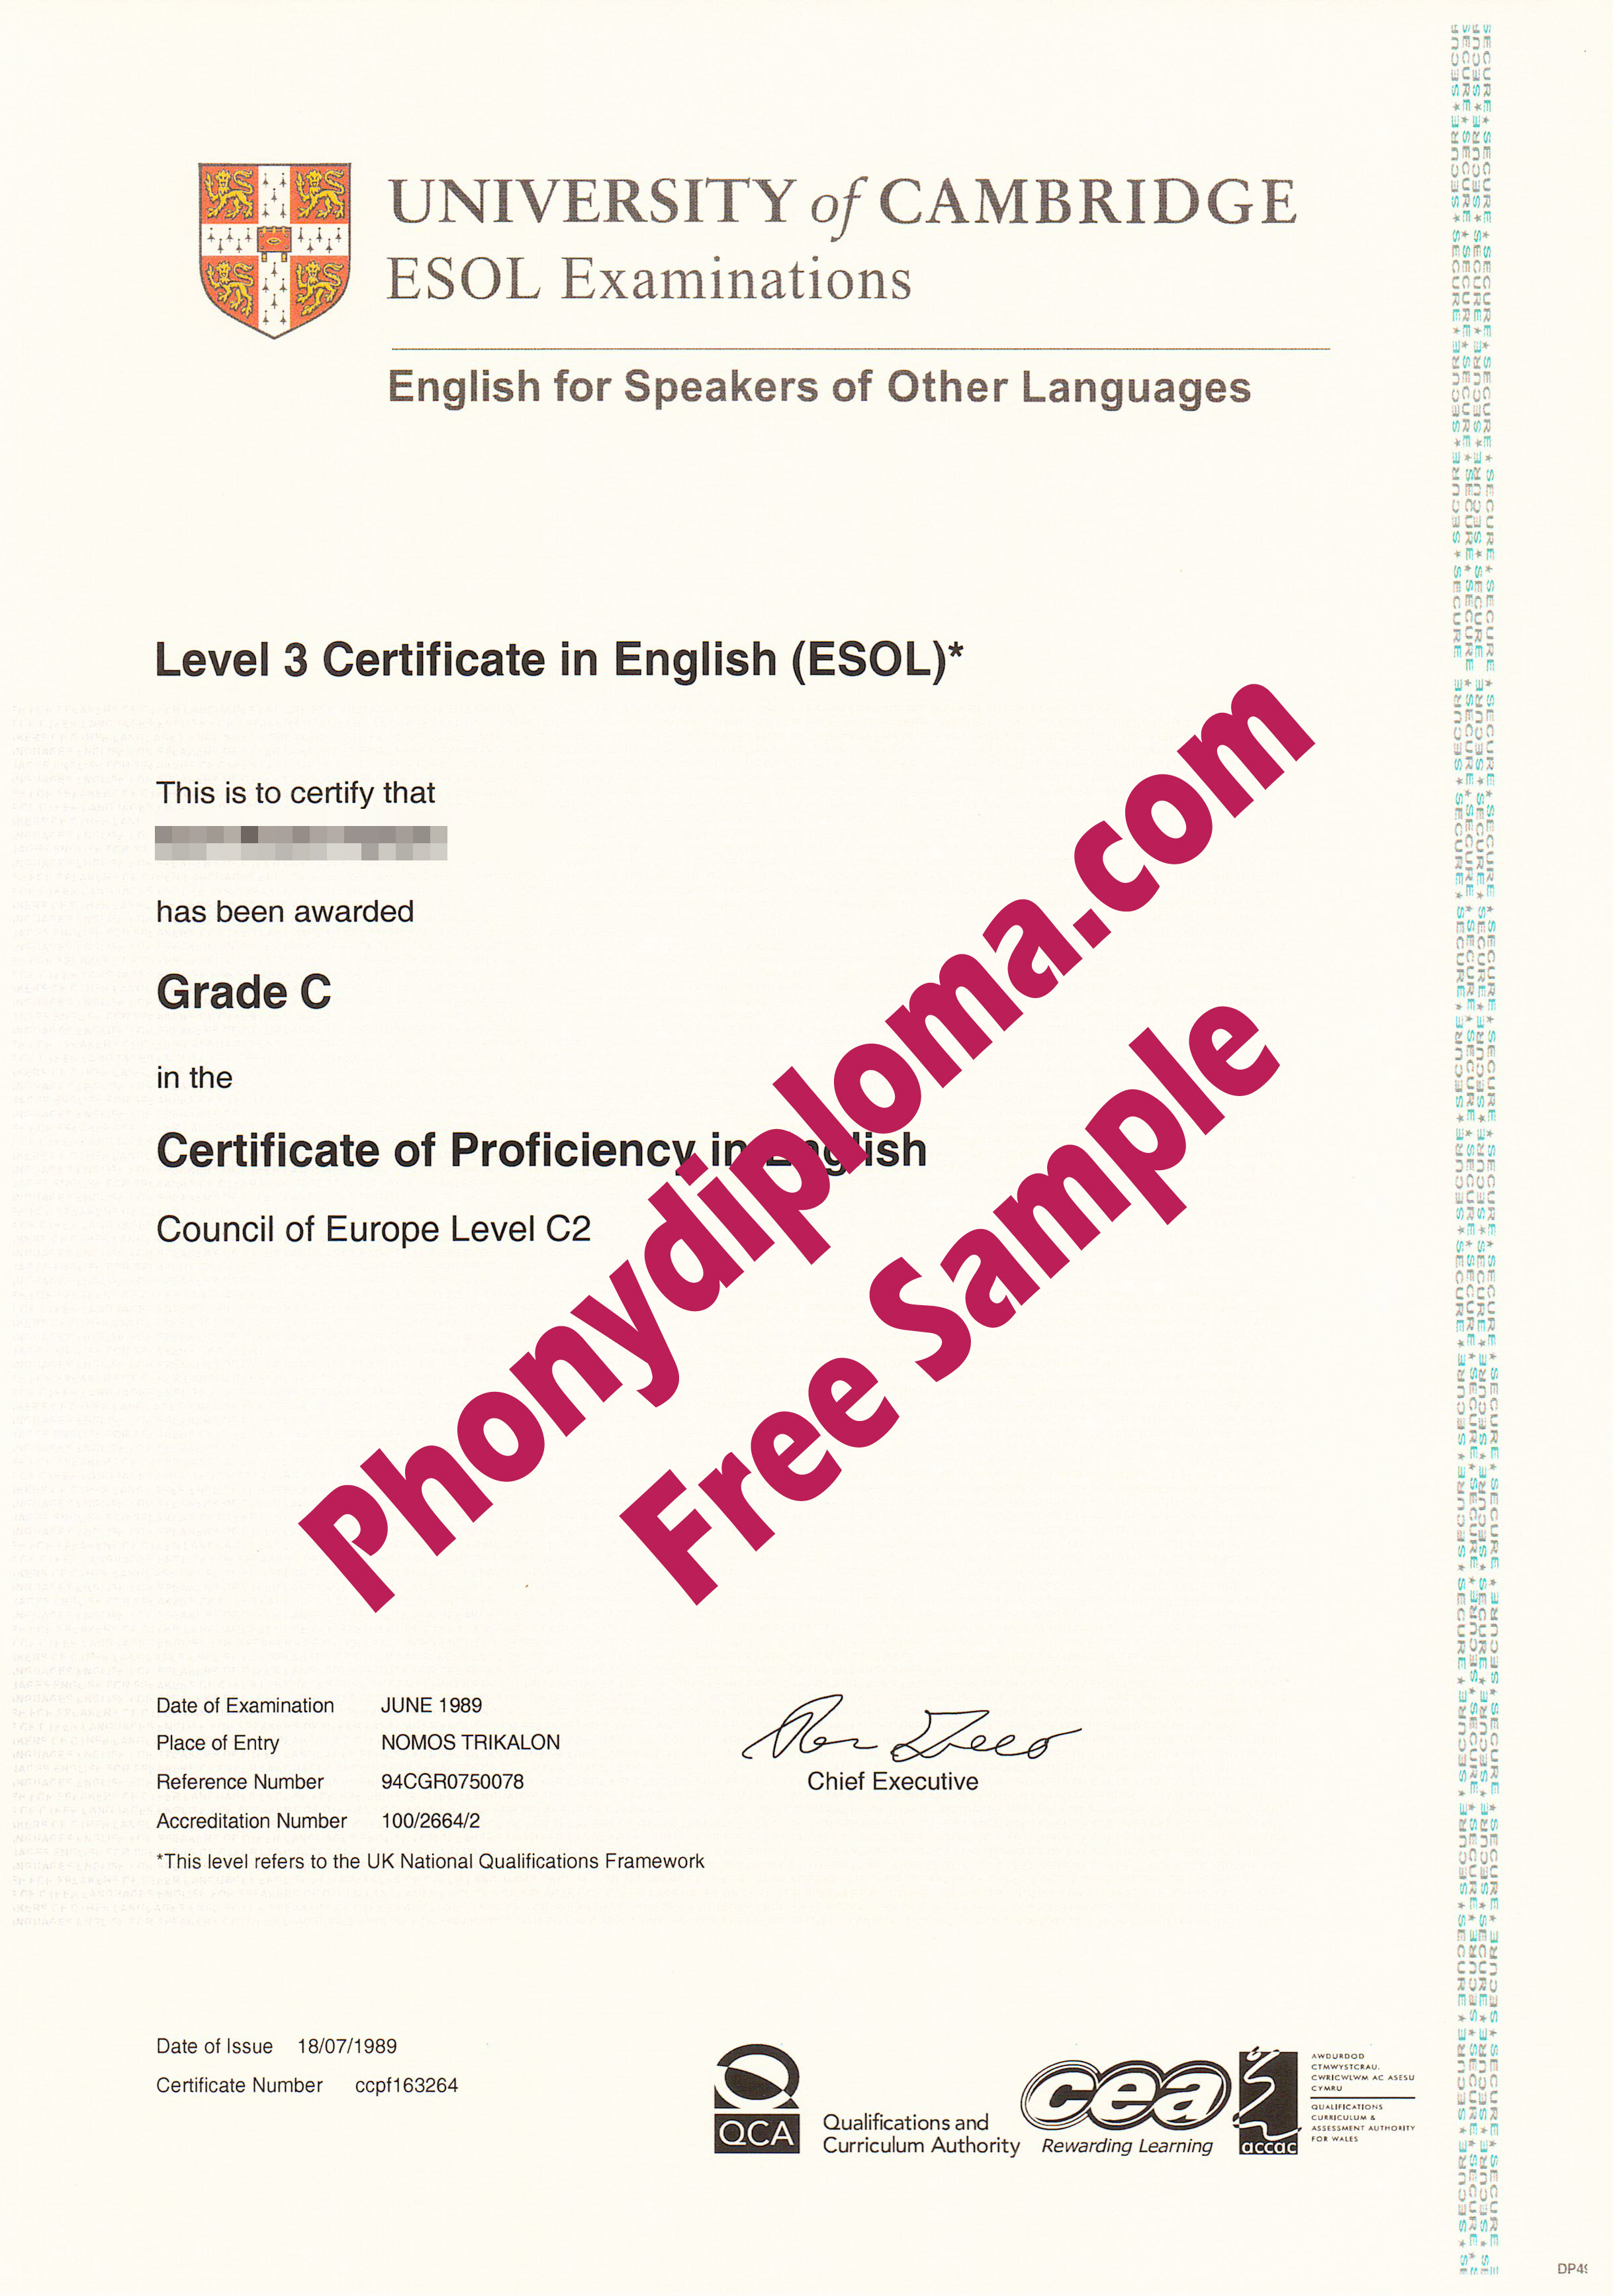 University Of Cambridge Esol Level 3 Certificate Free Sample From Phonydiploma